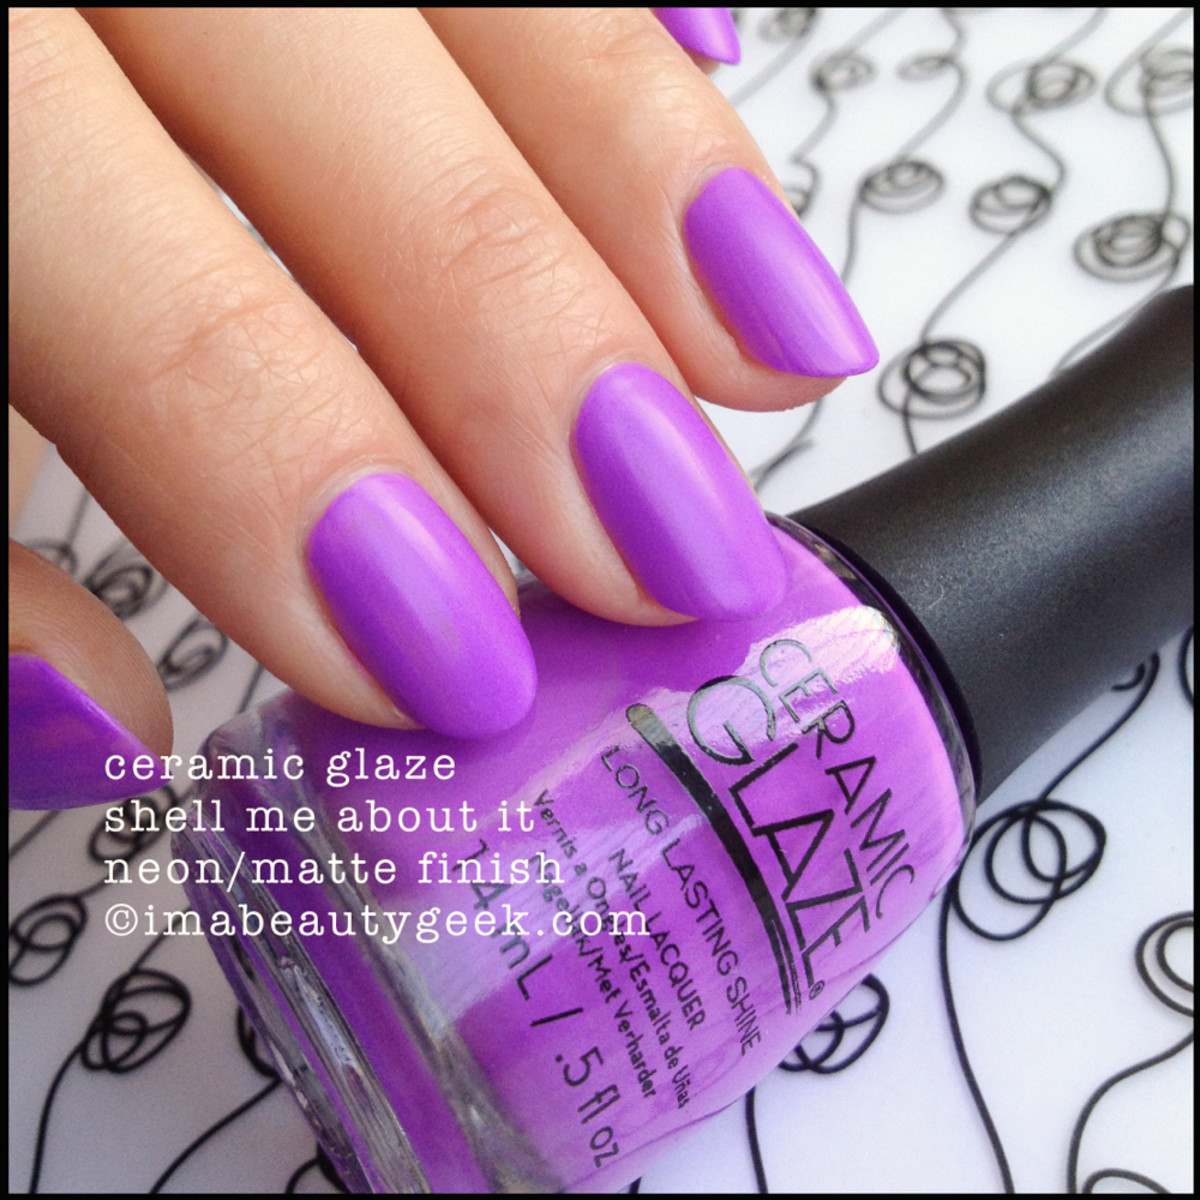 Ceramic Glaze Shell Me About It Neon Matte Polish